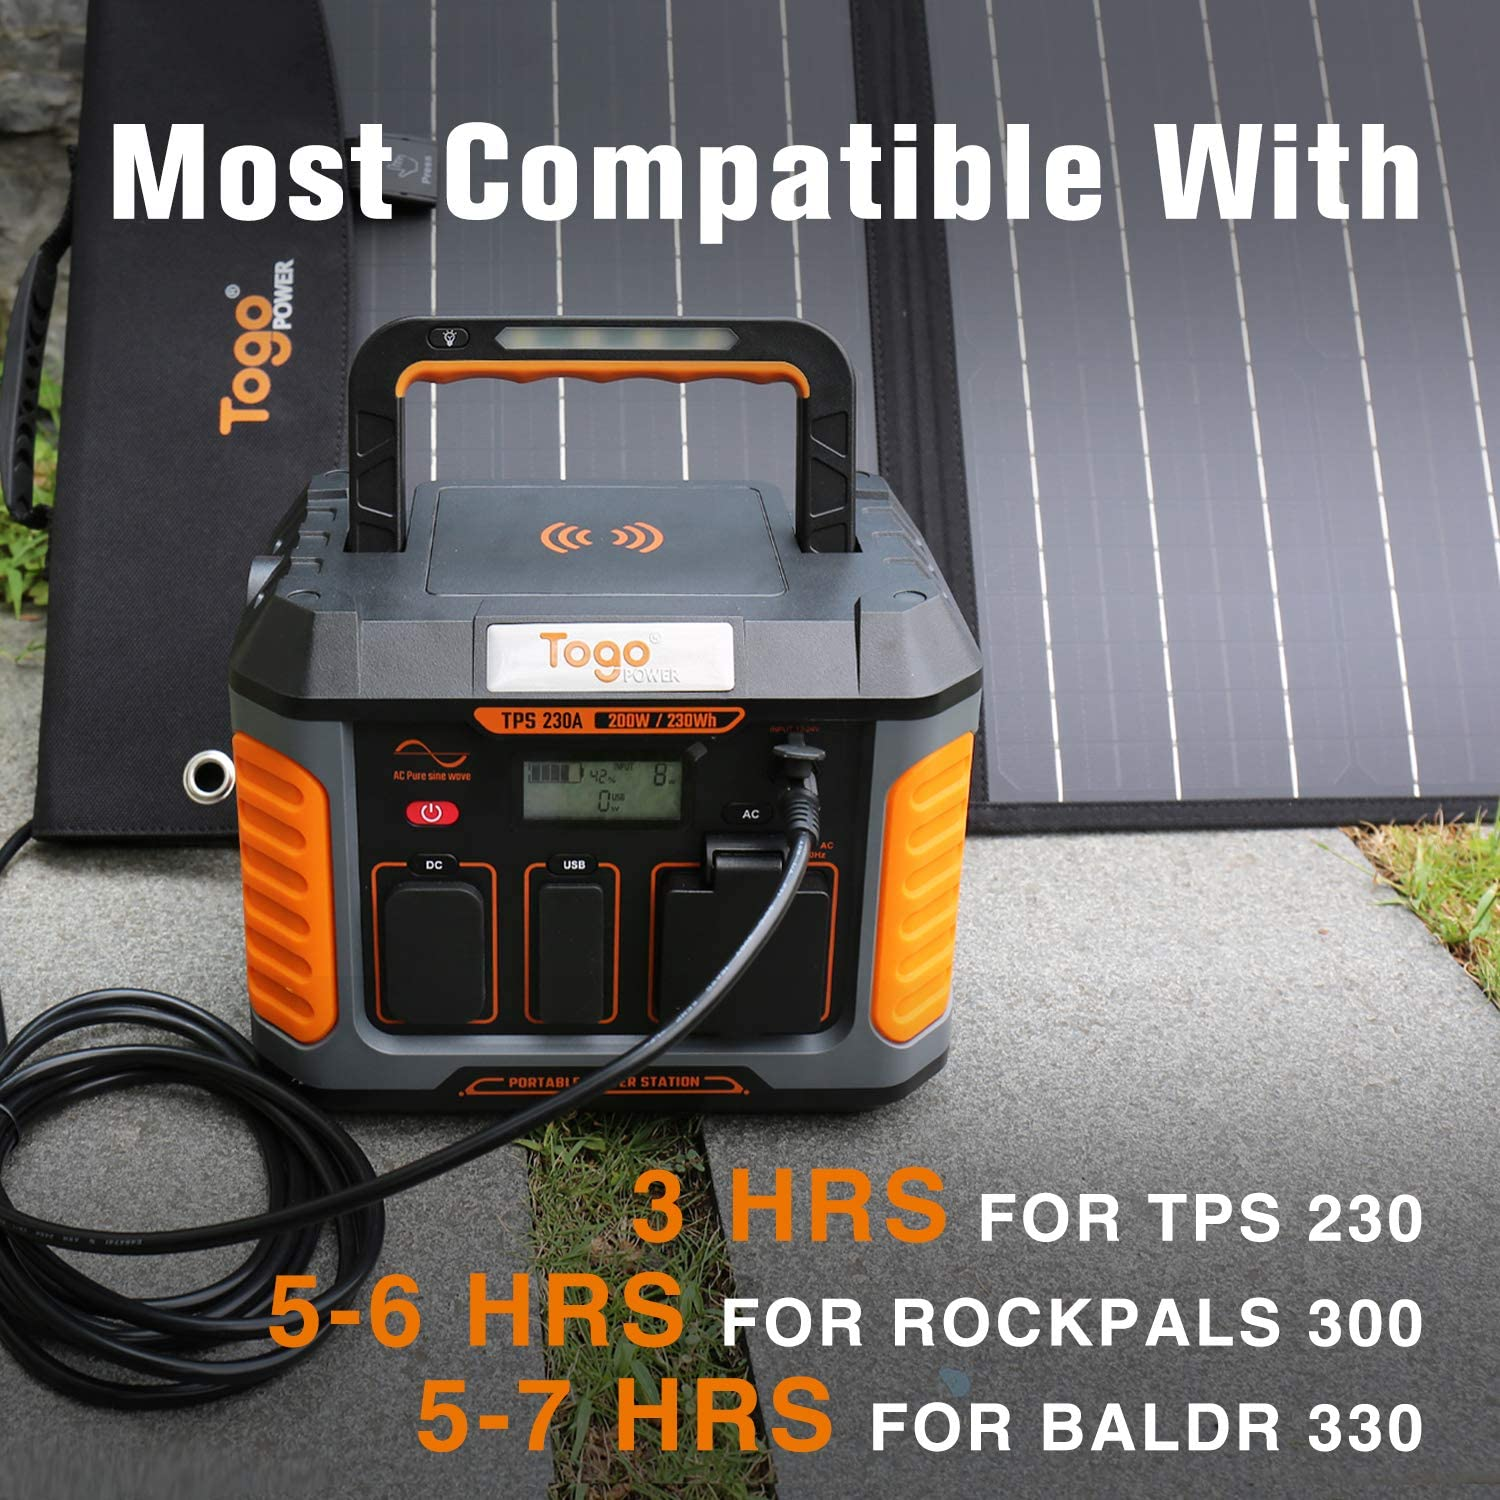 TogoPower 60W Portable Foldable Solar Panel Battery Charger with Dual USB Ports /& 18V DC Output for Portable Generator Power Station Cell Phone GoPro Laptop Tablet GPS iPhone iPad Camera